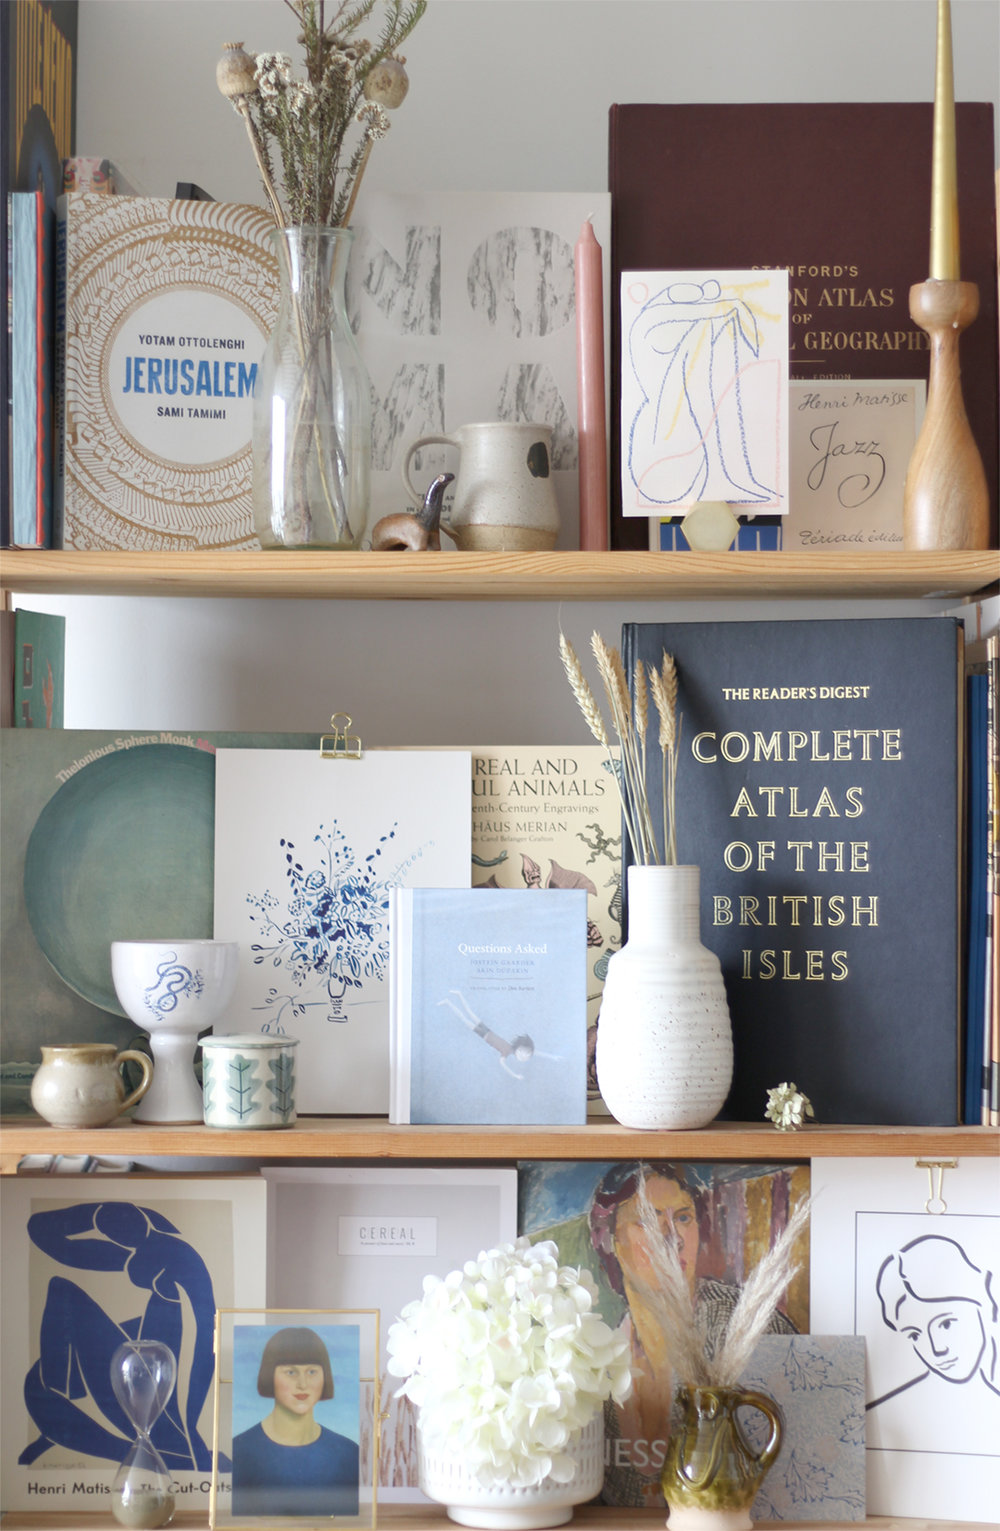 nancy-straughan-interior-stylist-styled-bookshelves-maximalism-shelfie.jpg